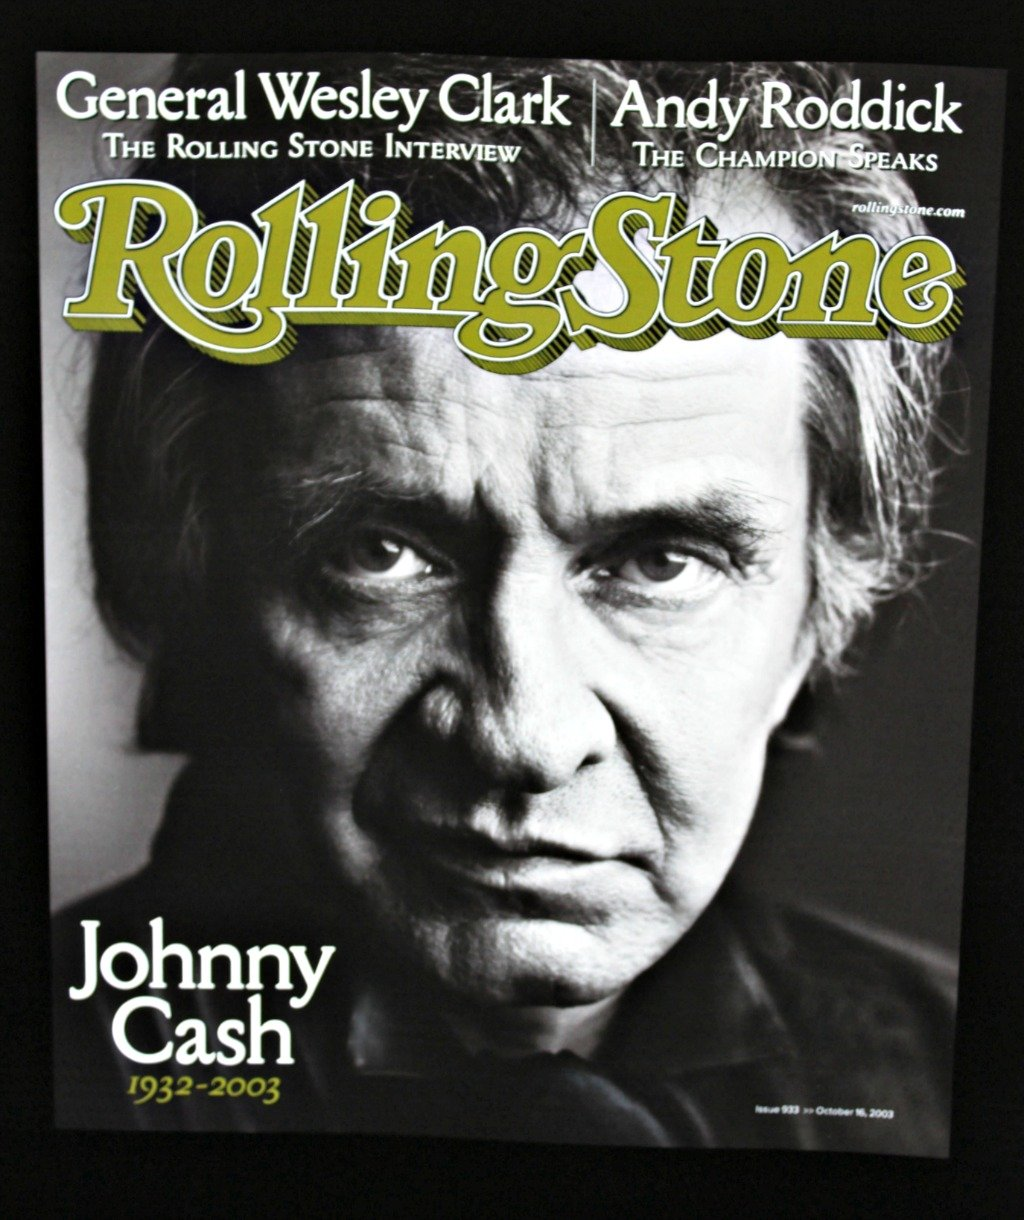 50 Years of Rolling Stone Magazine at the Rock and Roll Hall of Fame